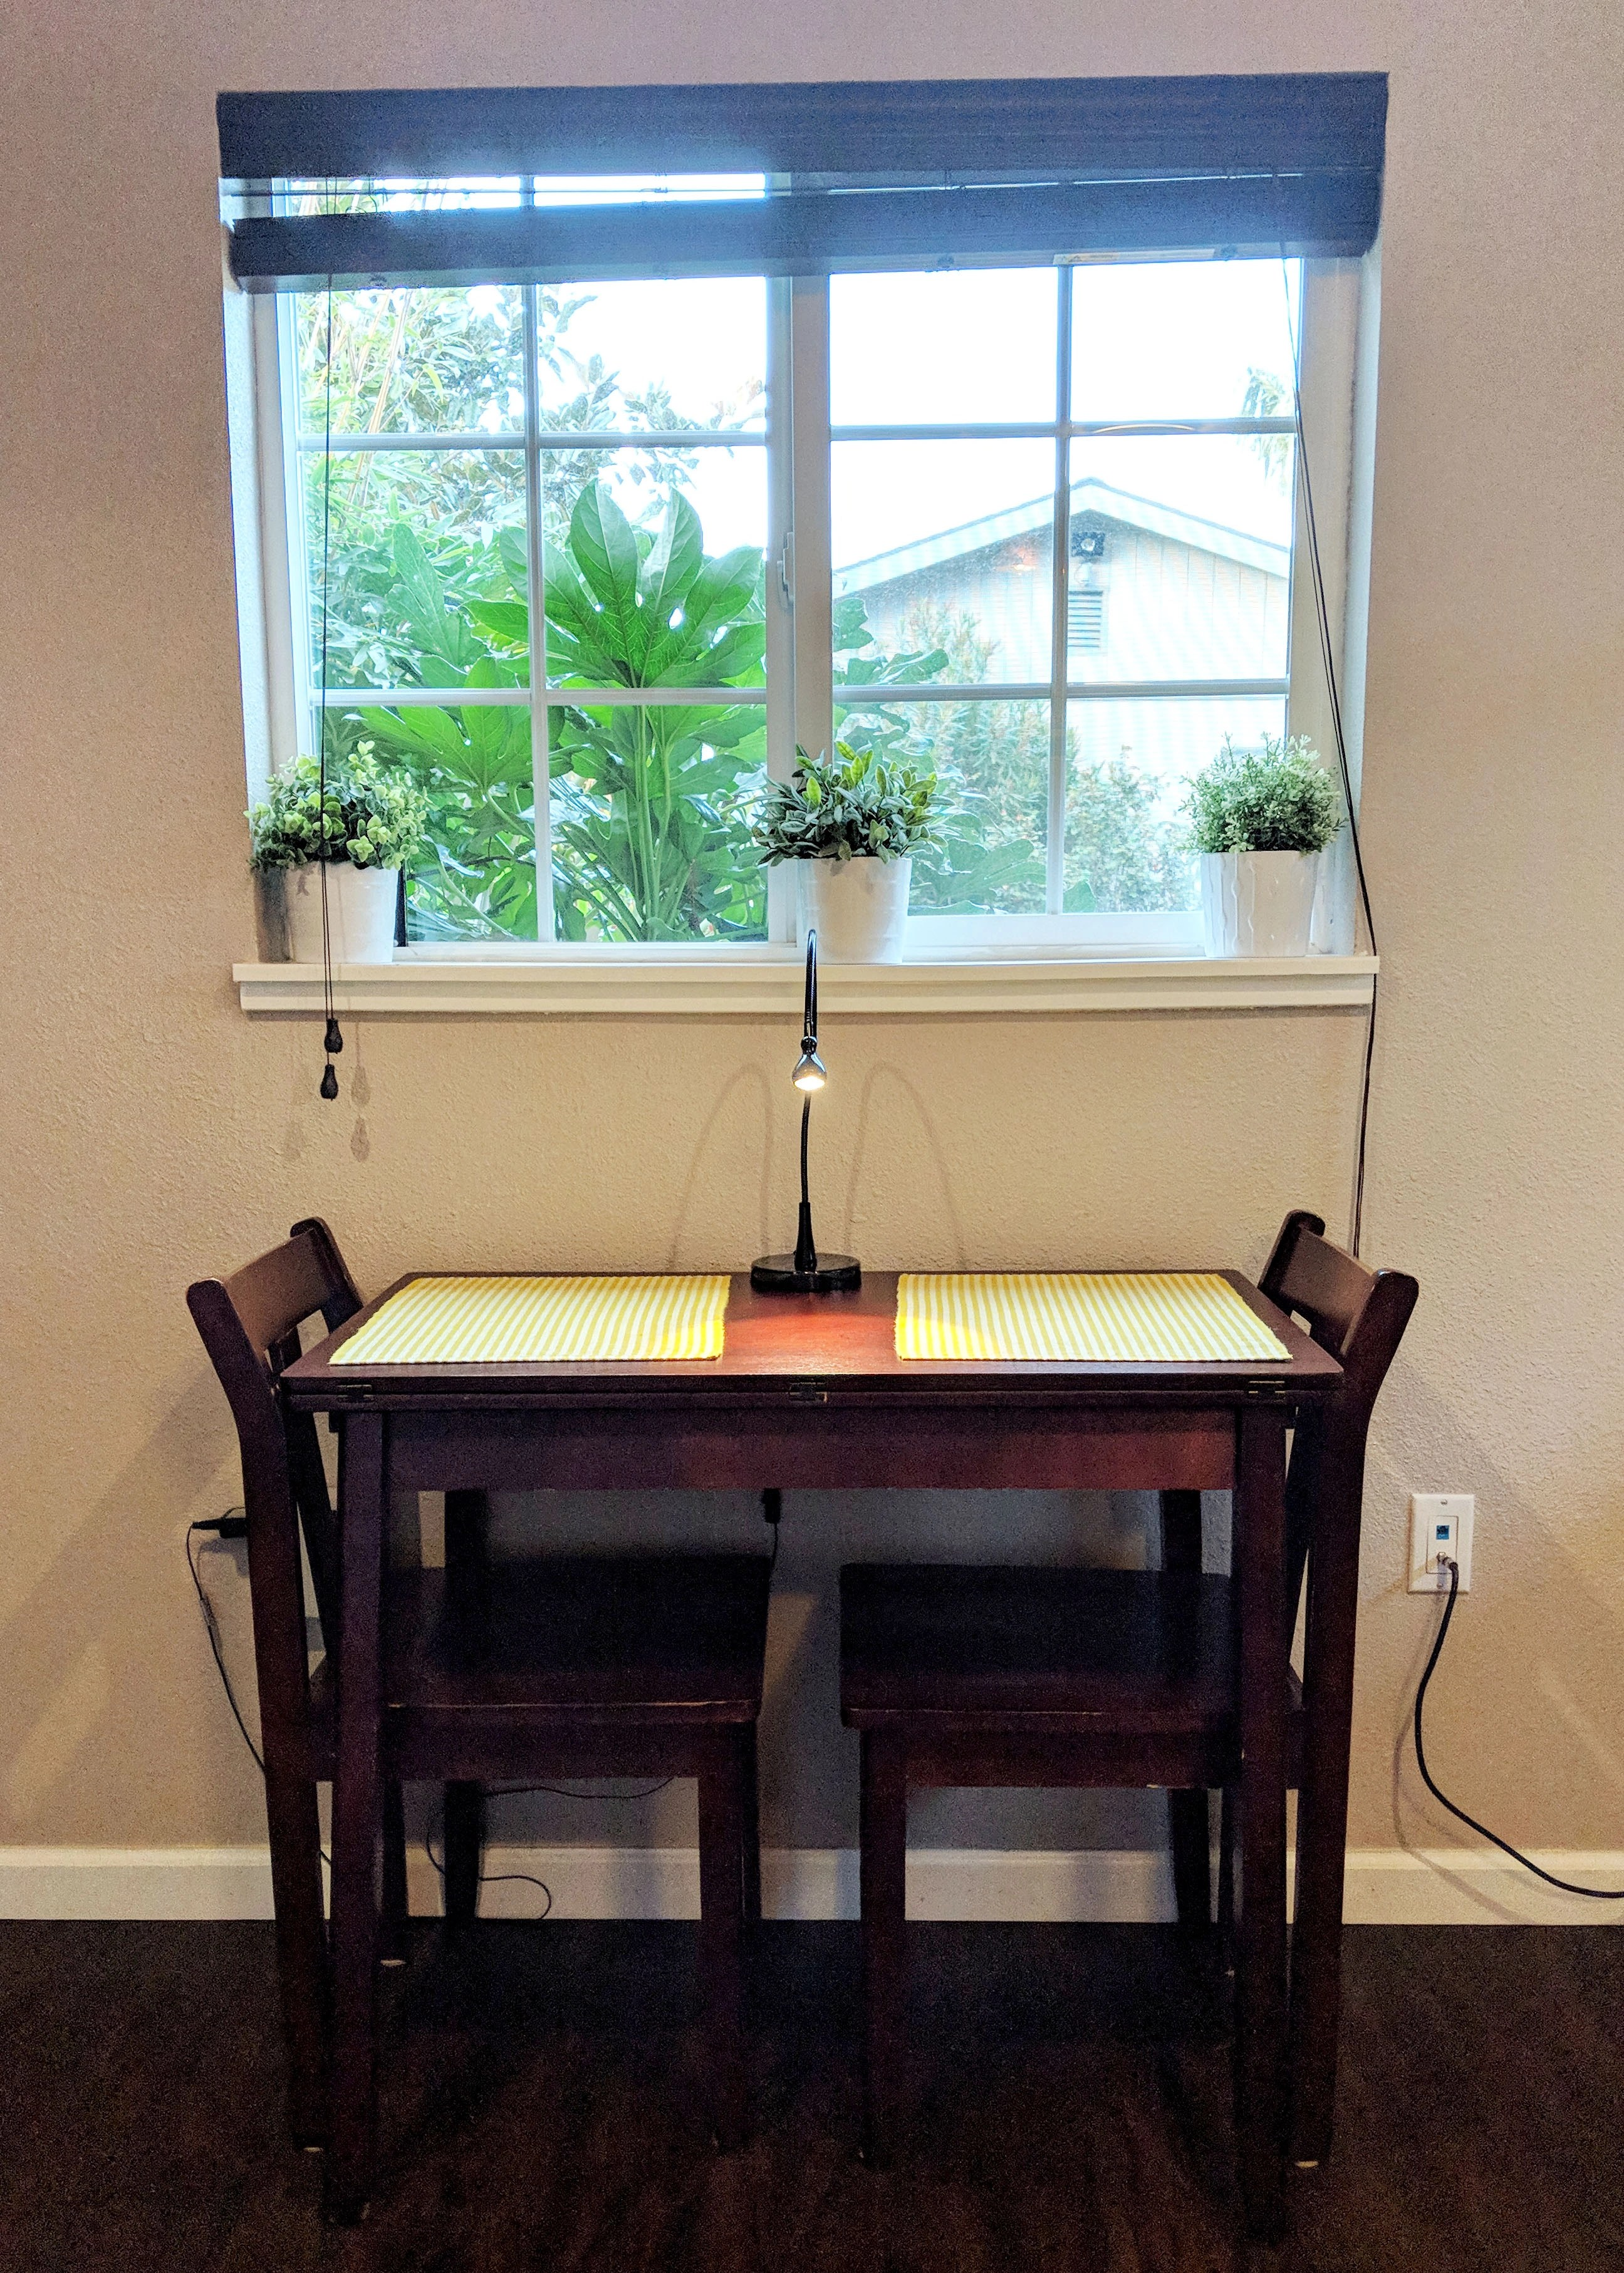 tiny table in front of window with two chairs